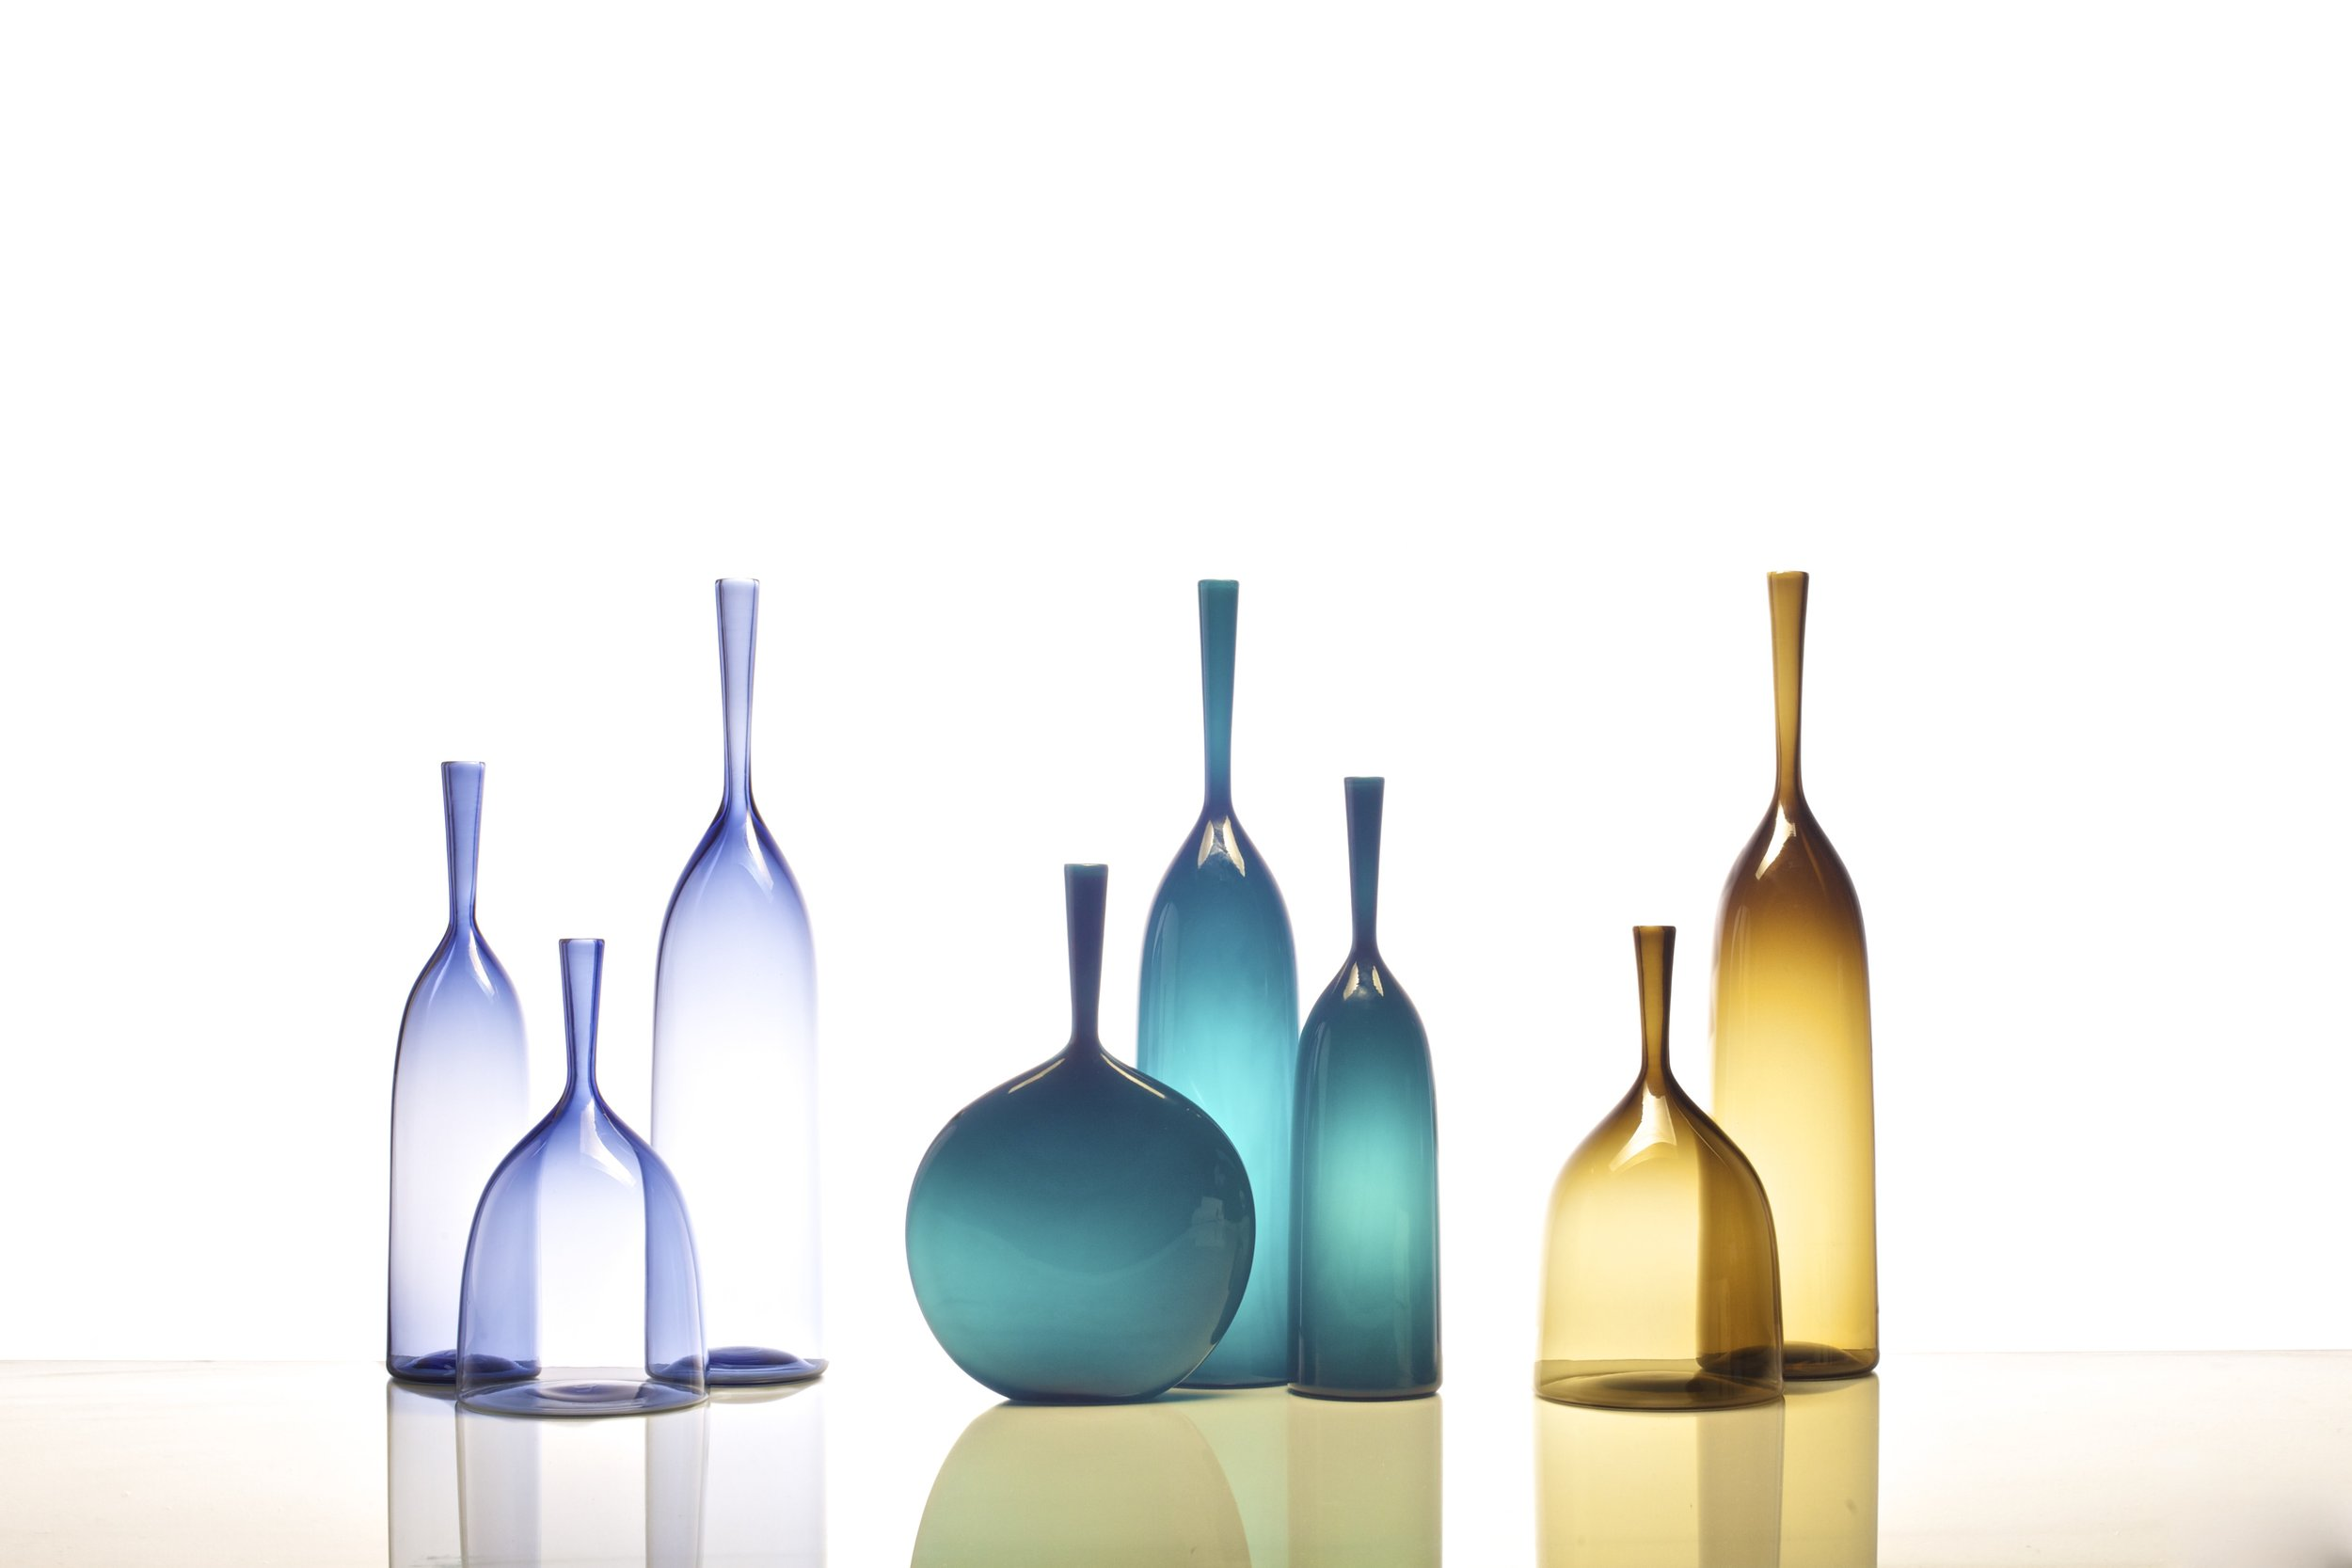 ANGELIC BOTTLES: SMALL, WIDE, LARGE IN ICE BLUE, FLASK, LARGE, SMALL IN AZURE, WIDE & LARGE IN TOPAZ